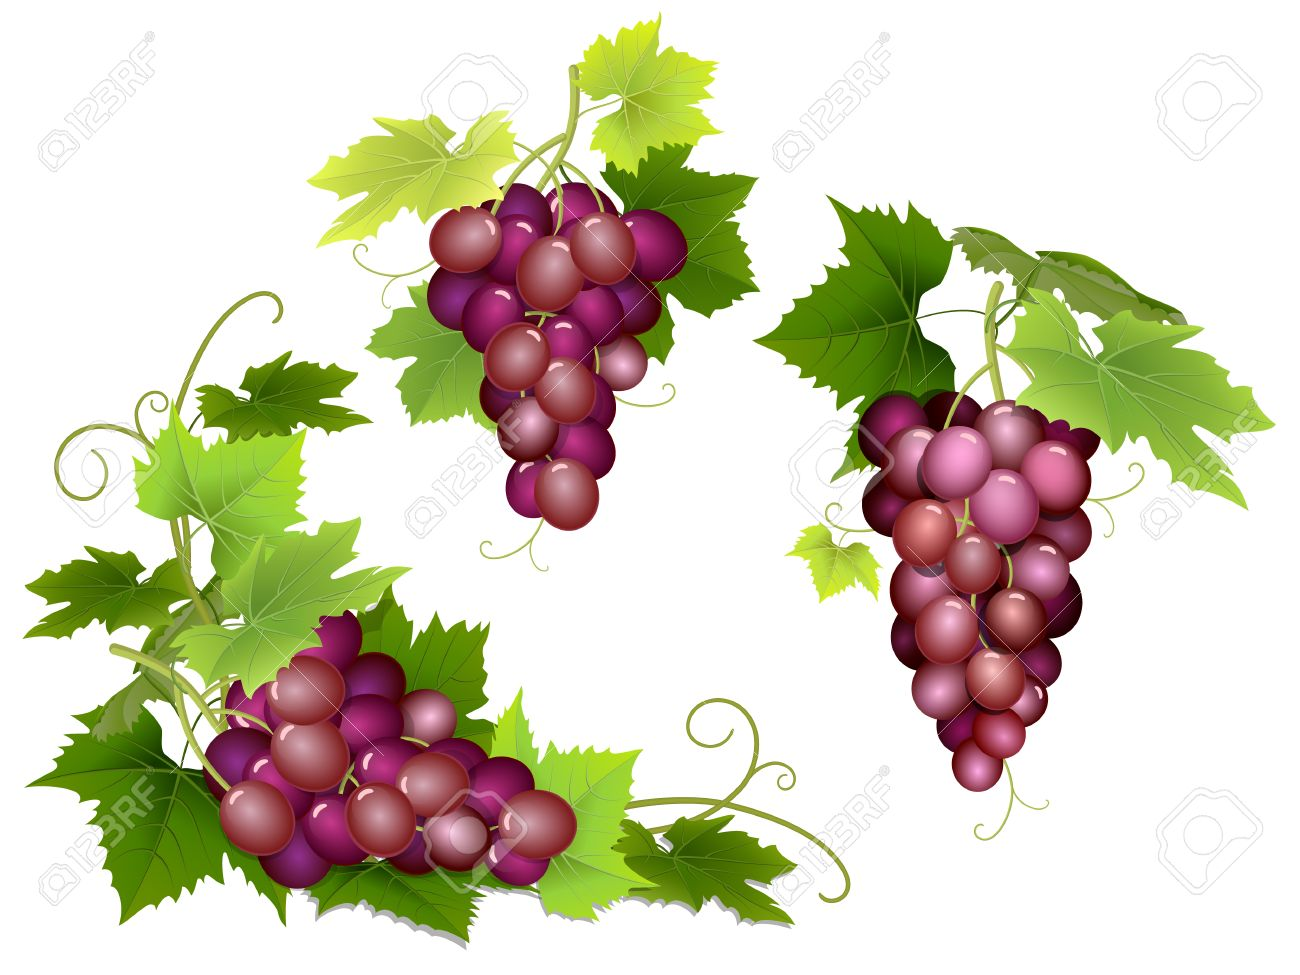 Set of pink bunches of grapes with green leaves. Stock Vector - 43792462